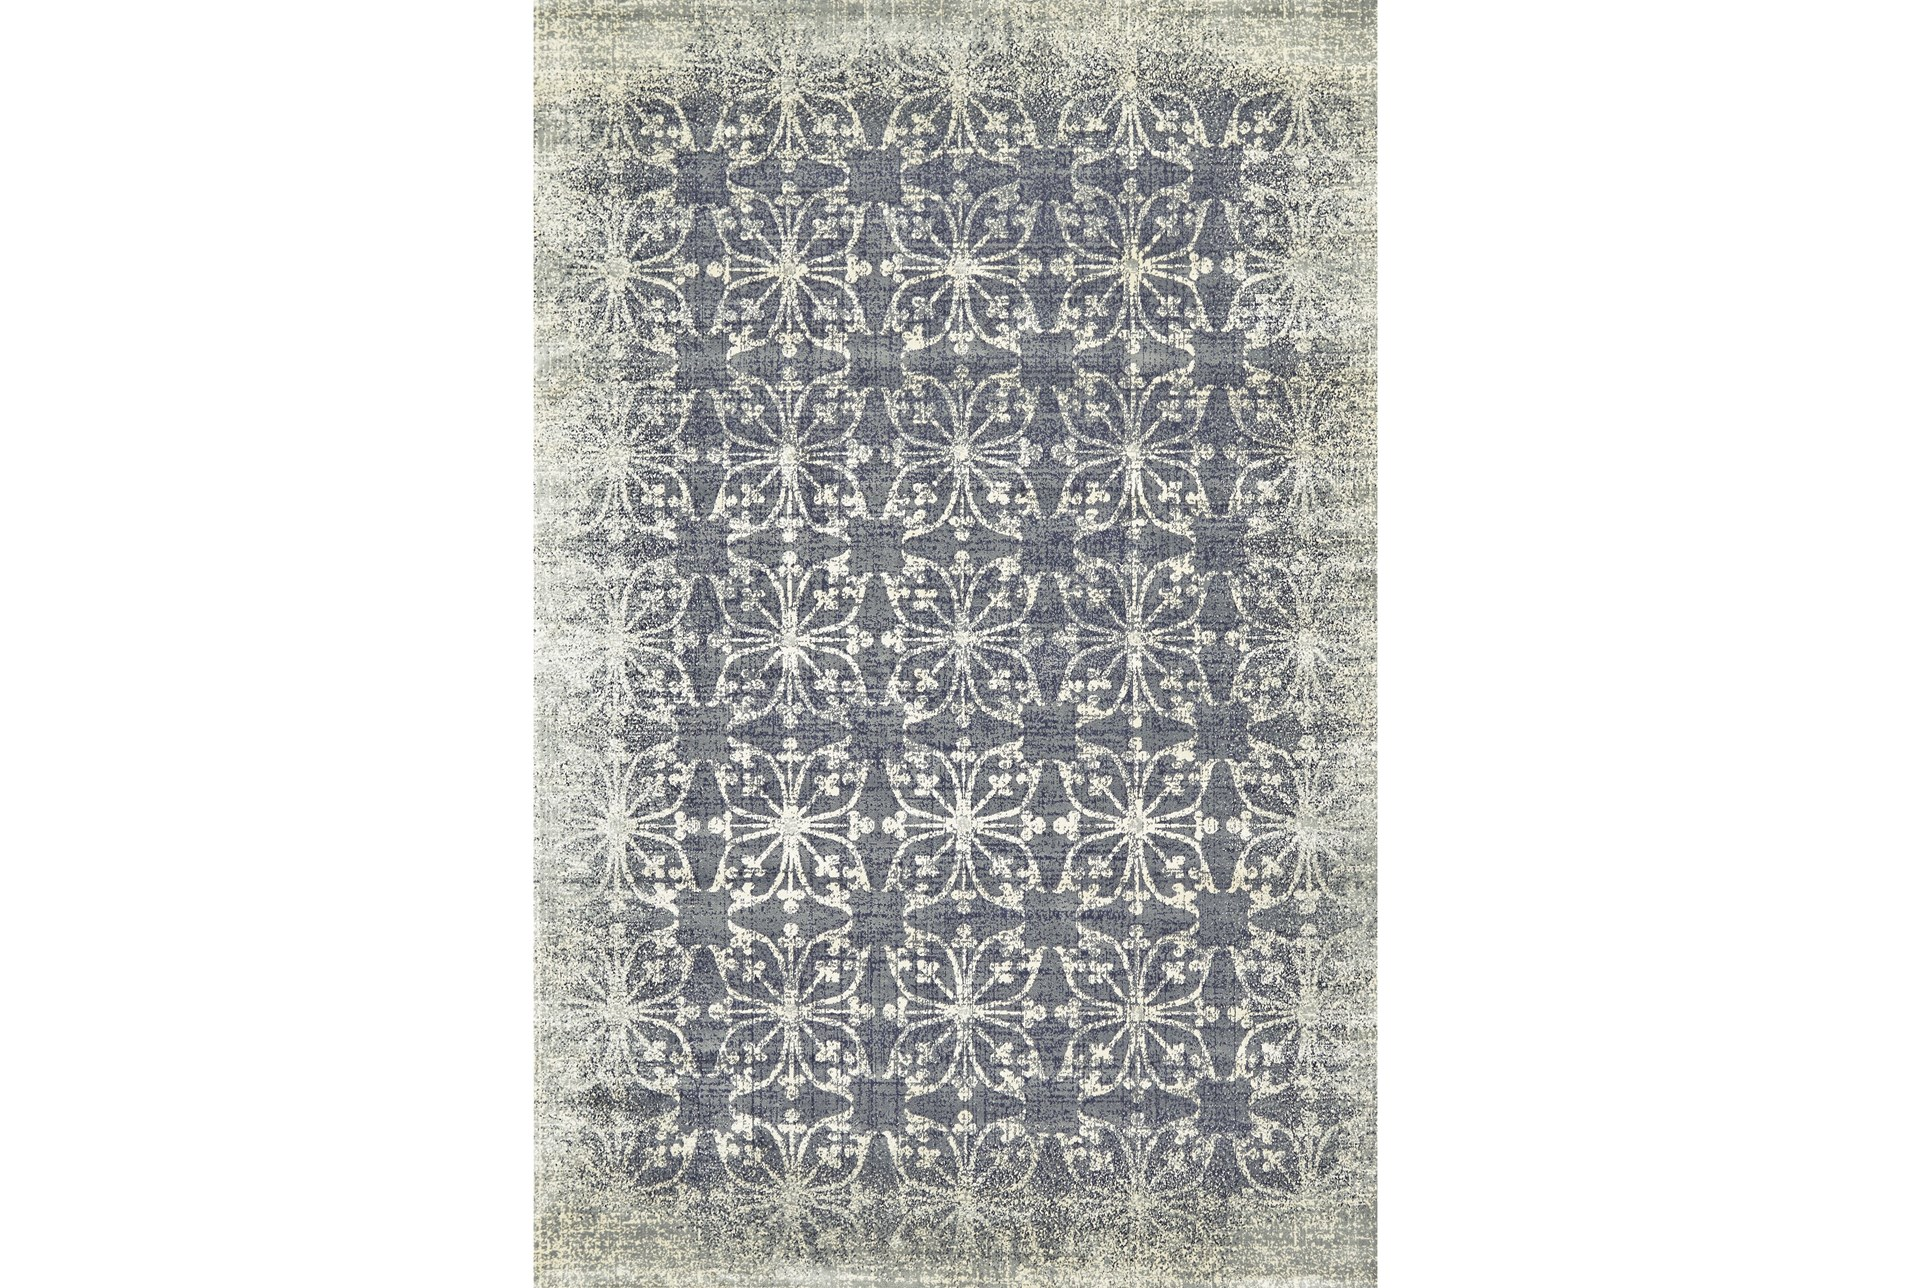 90x126 Rug Amari Dark Grey Qty 1 Has Been Successfully Added To Your Cart